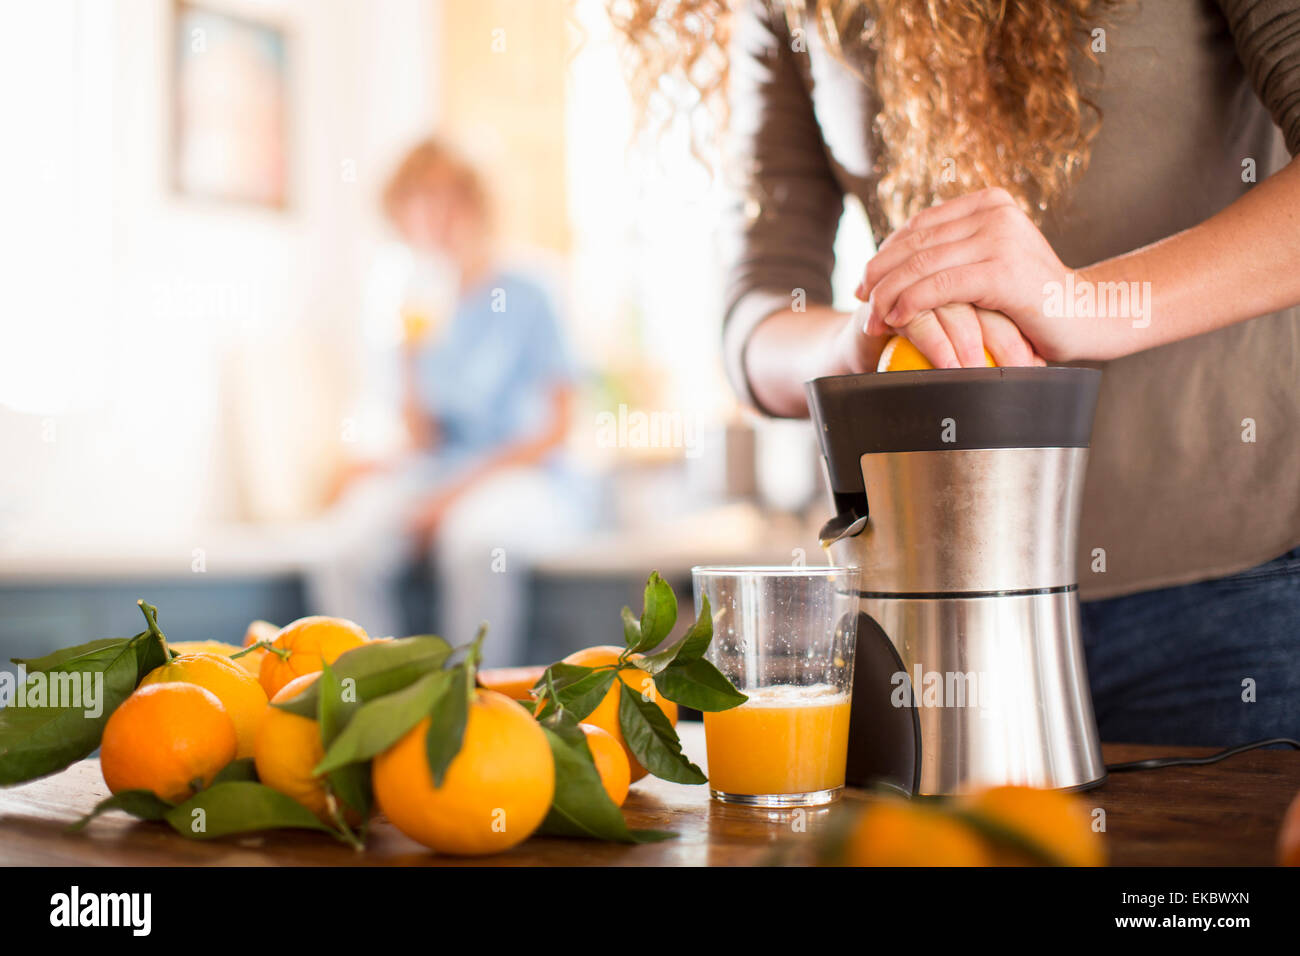 Orange jus adolescente dans la cuisine Photo Stock